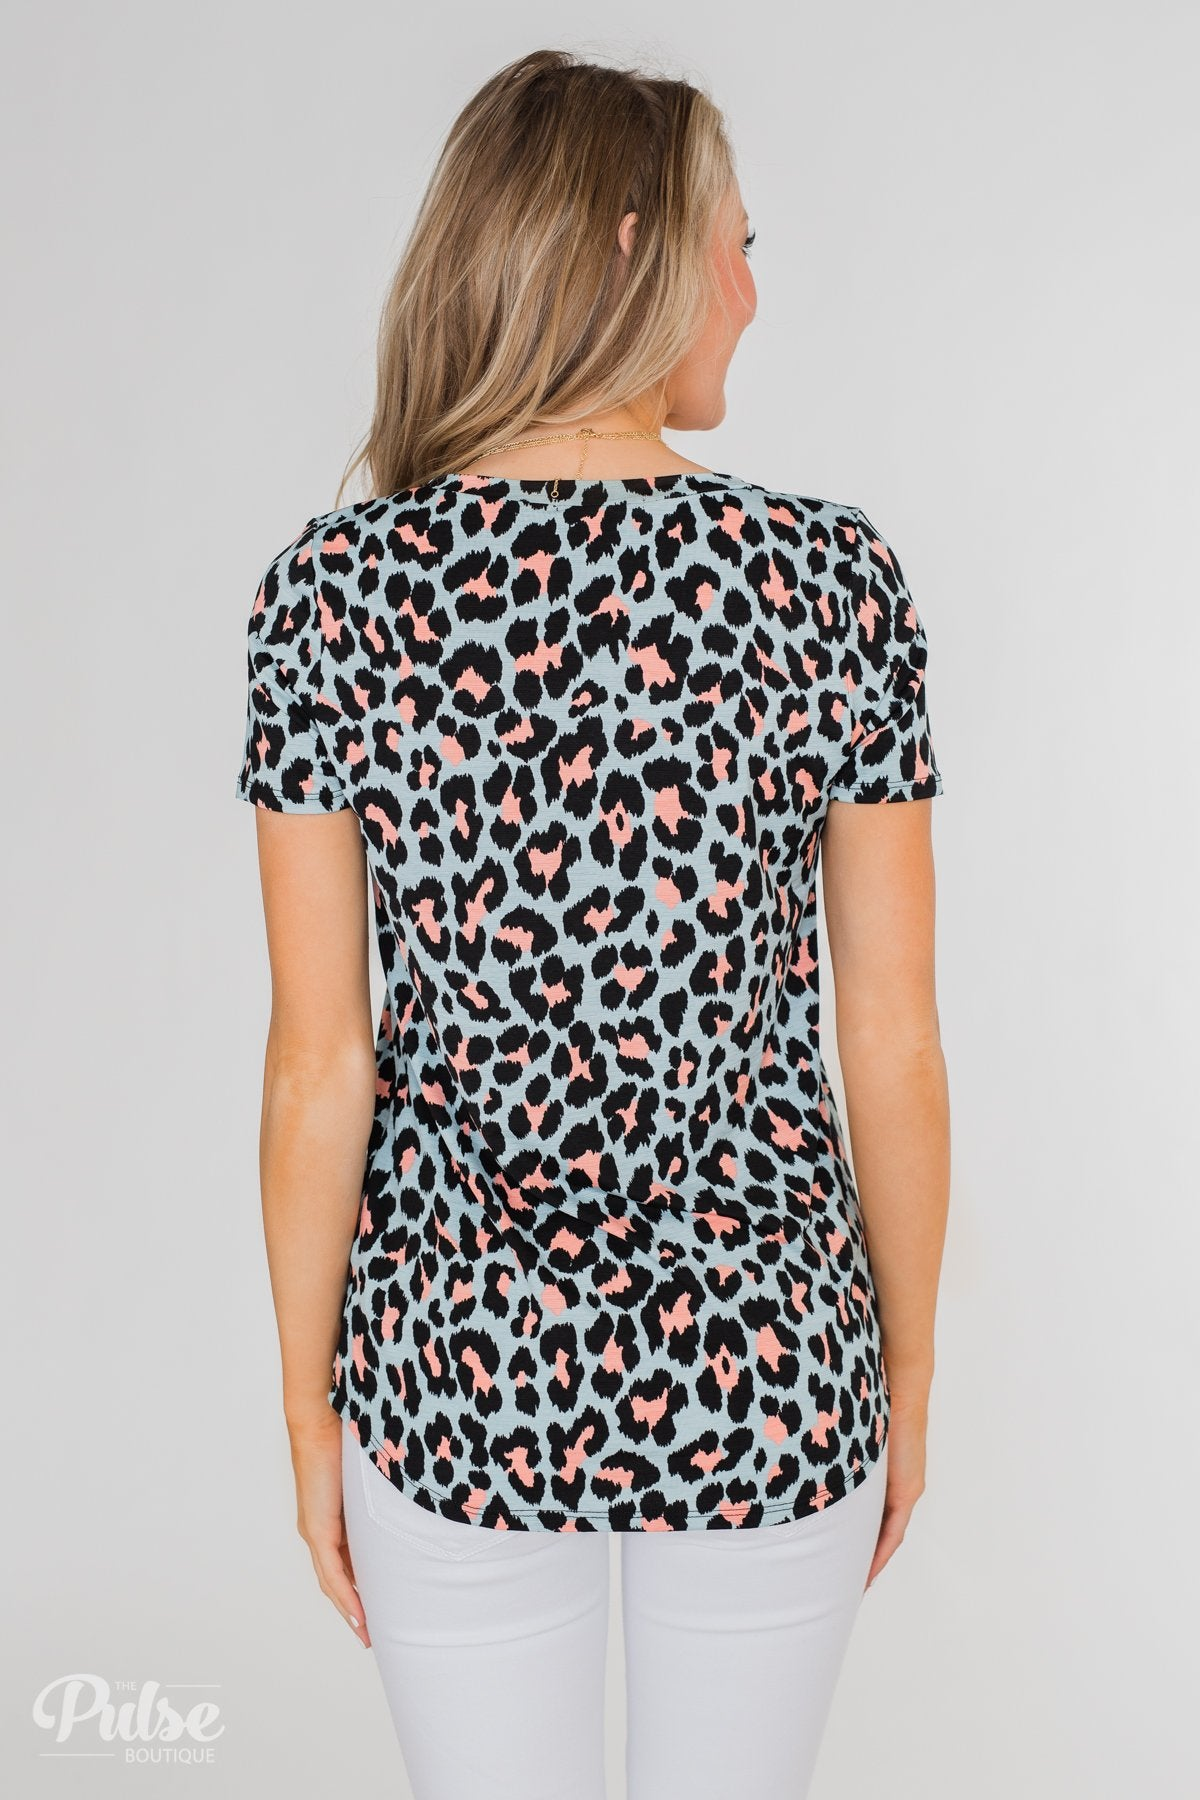 Can't Go Wrong V-Neck Leopard Top- Light Blue & Peach